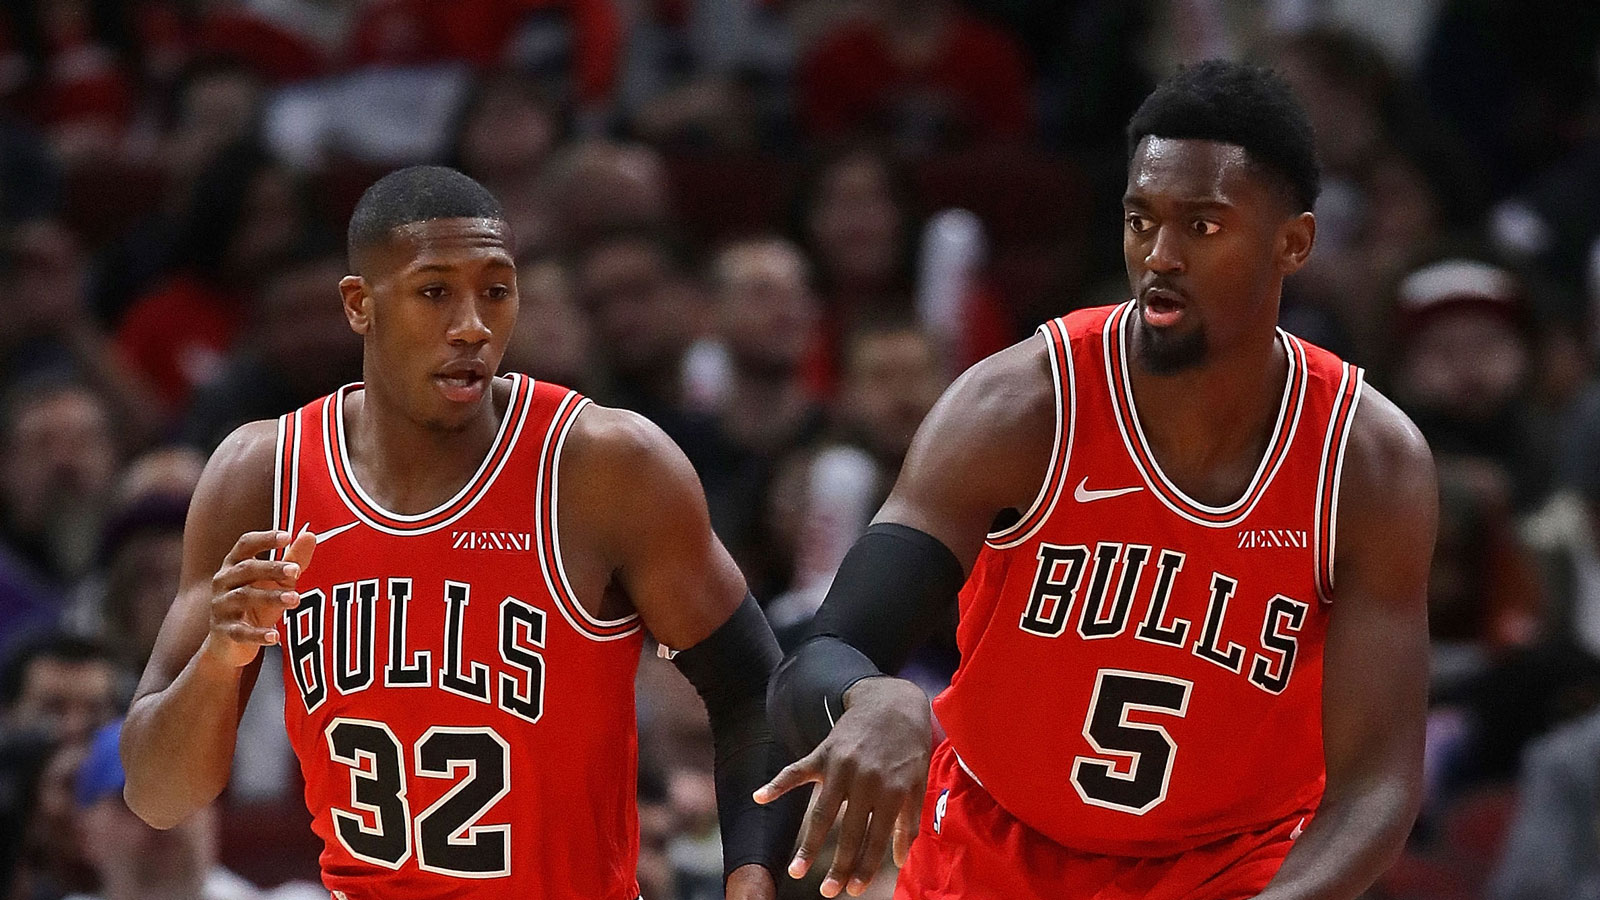 Kris Dunn and Bobby Portis return to the court after their injury